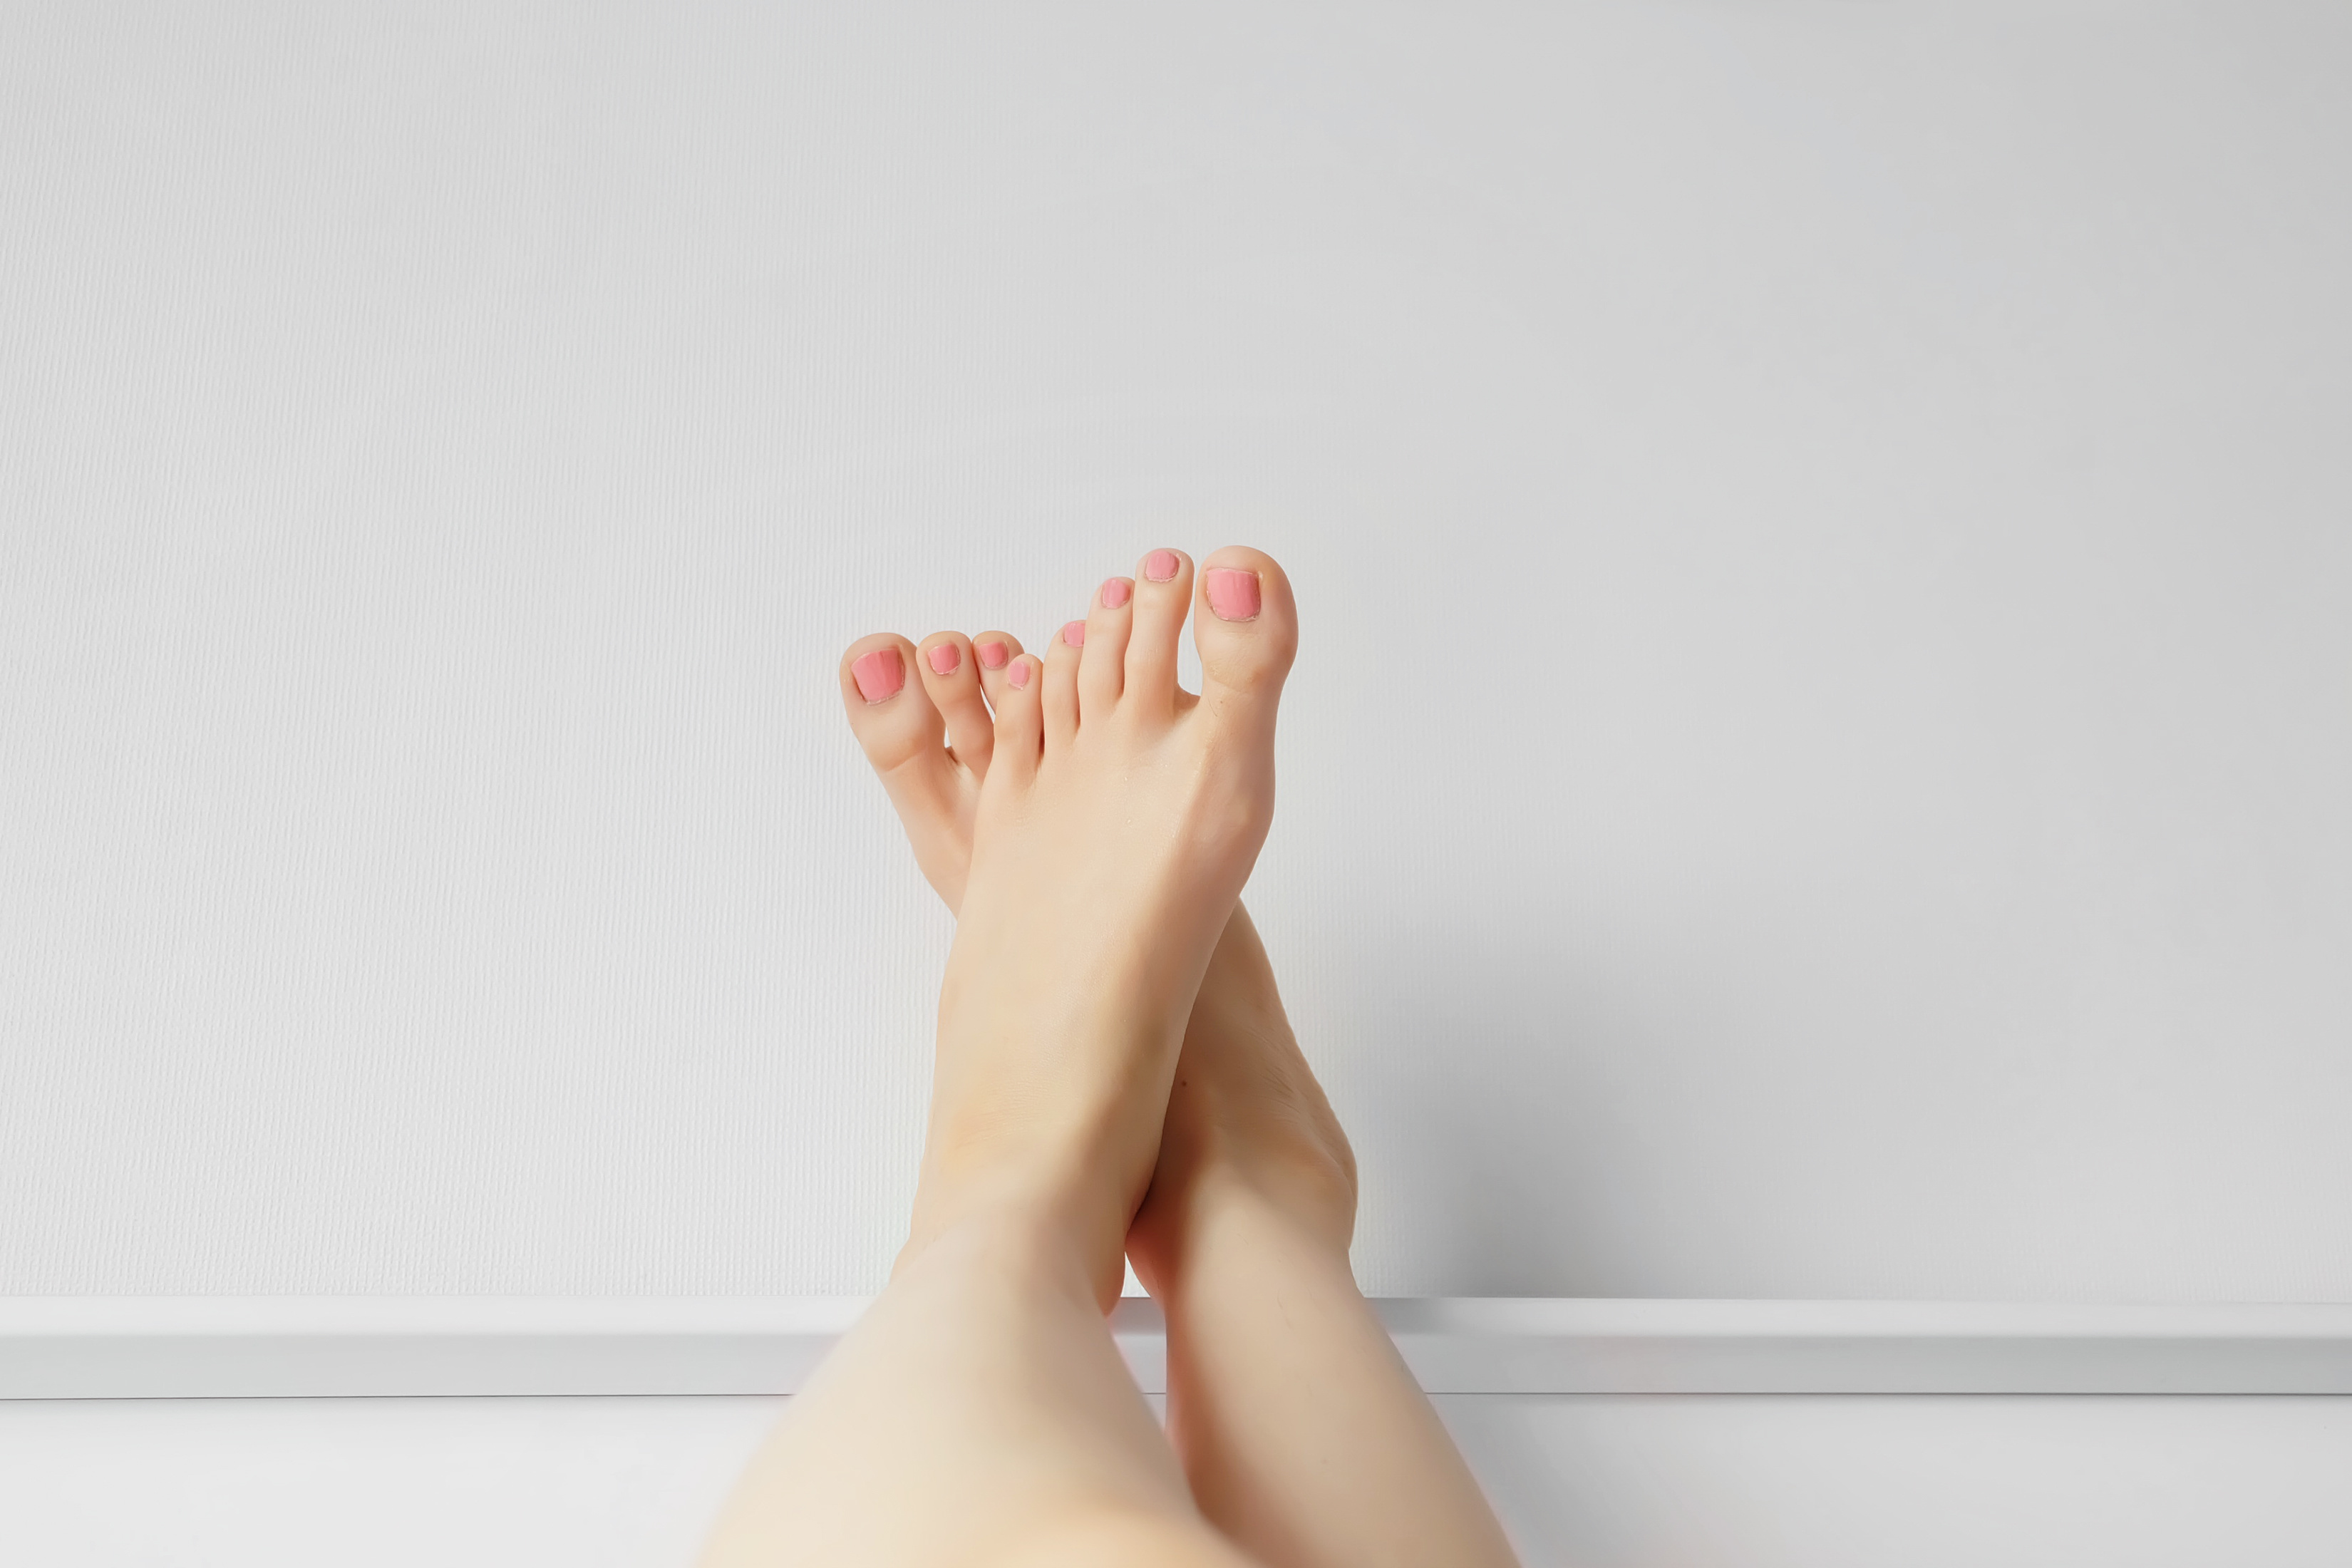 Ask Amy: I Have Morton's Toes. How Do I Find a More Stable Relevé?